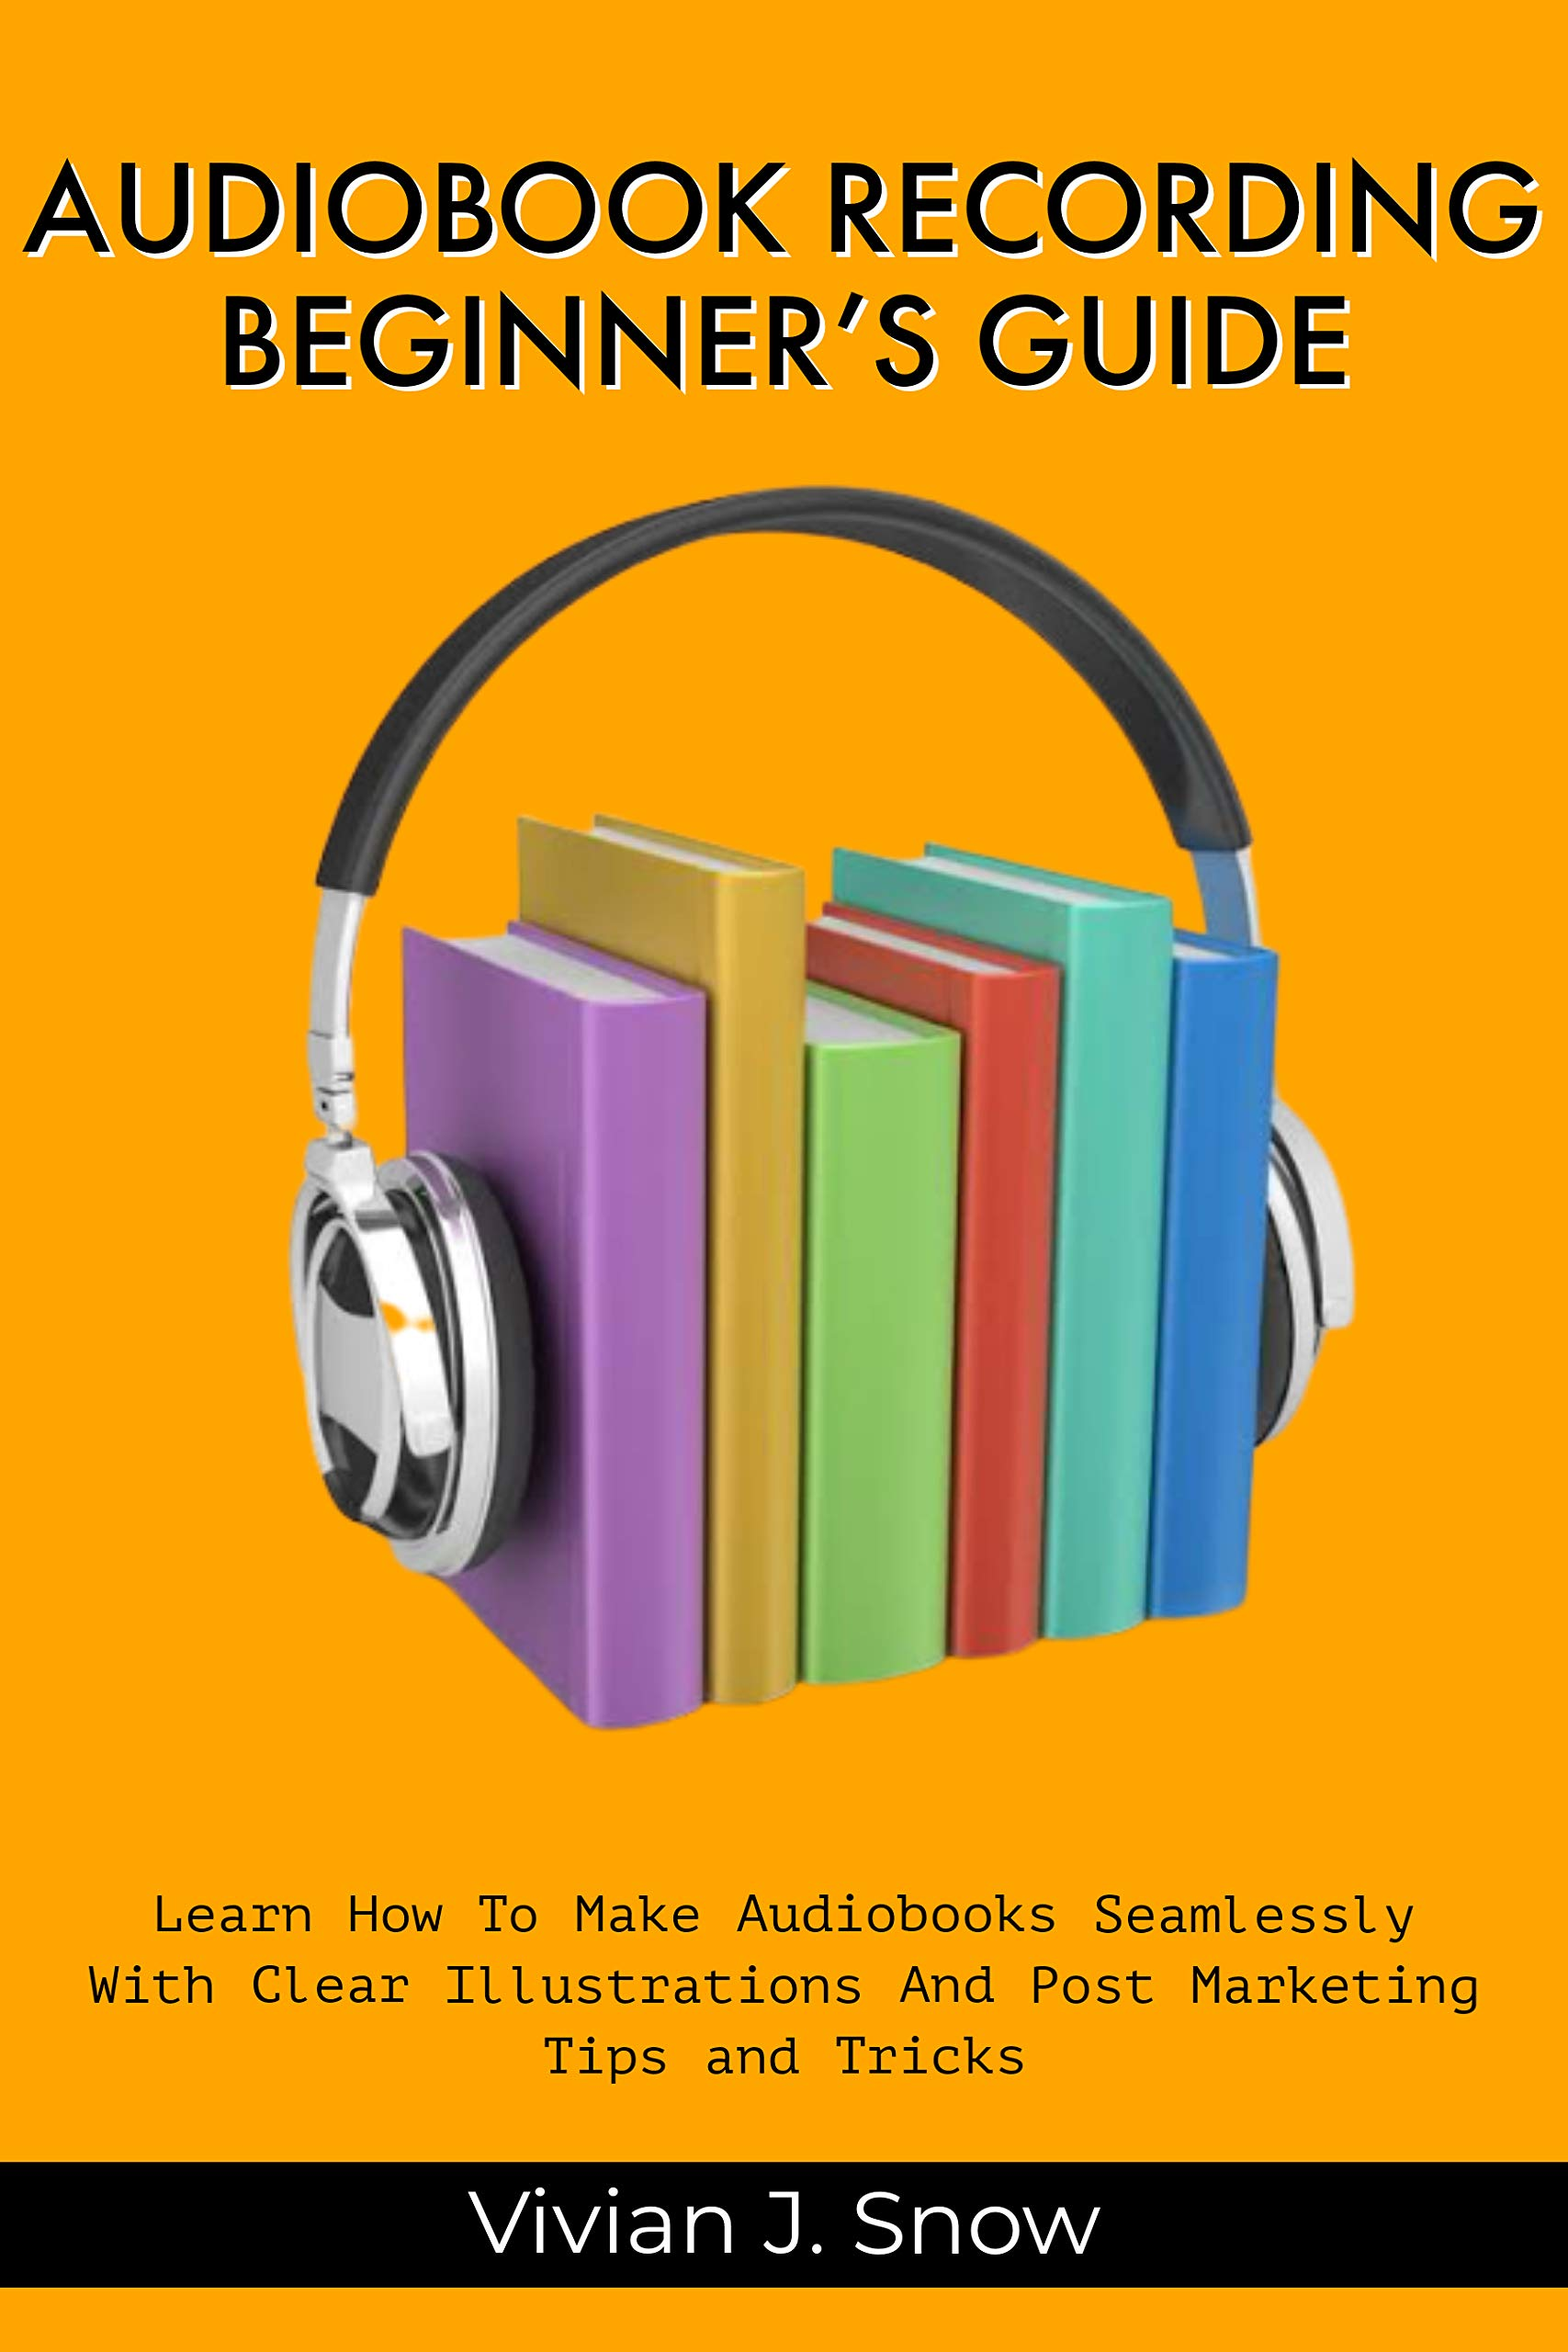 AUDIOBOOK RECORDING BEGINNER'S GUIDE: Learn How To Make Audiobooks Seamlessly With Clear Illustrations And Post Marketing Tips And Tricks